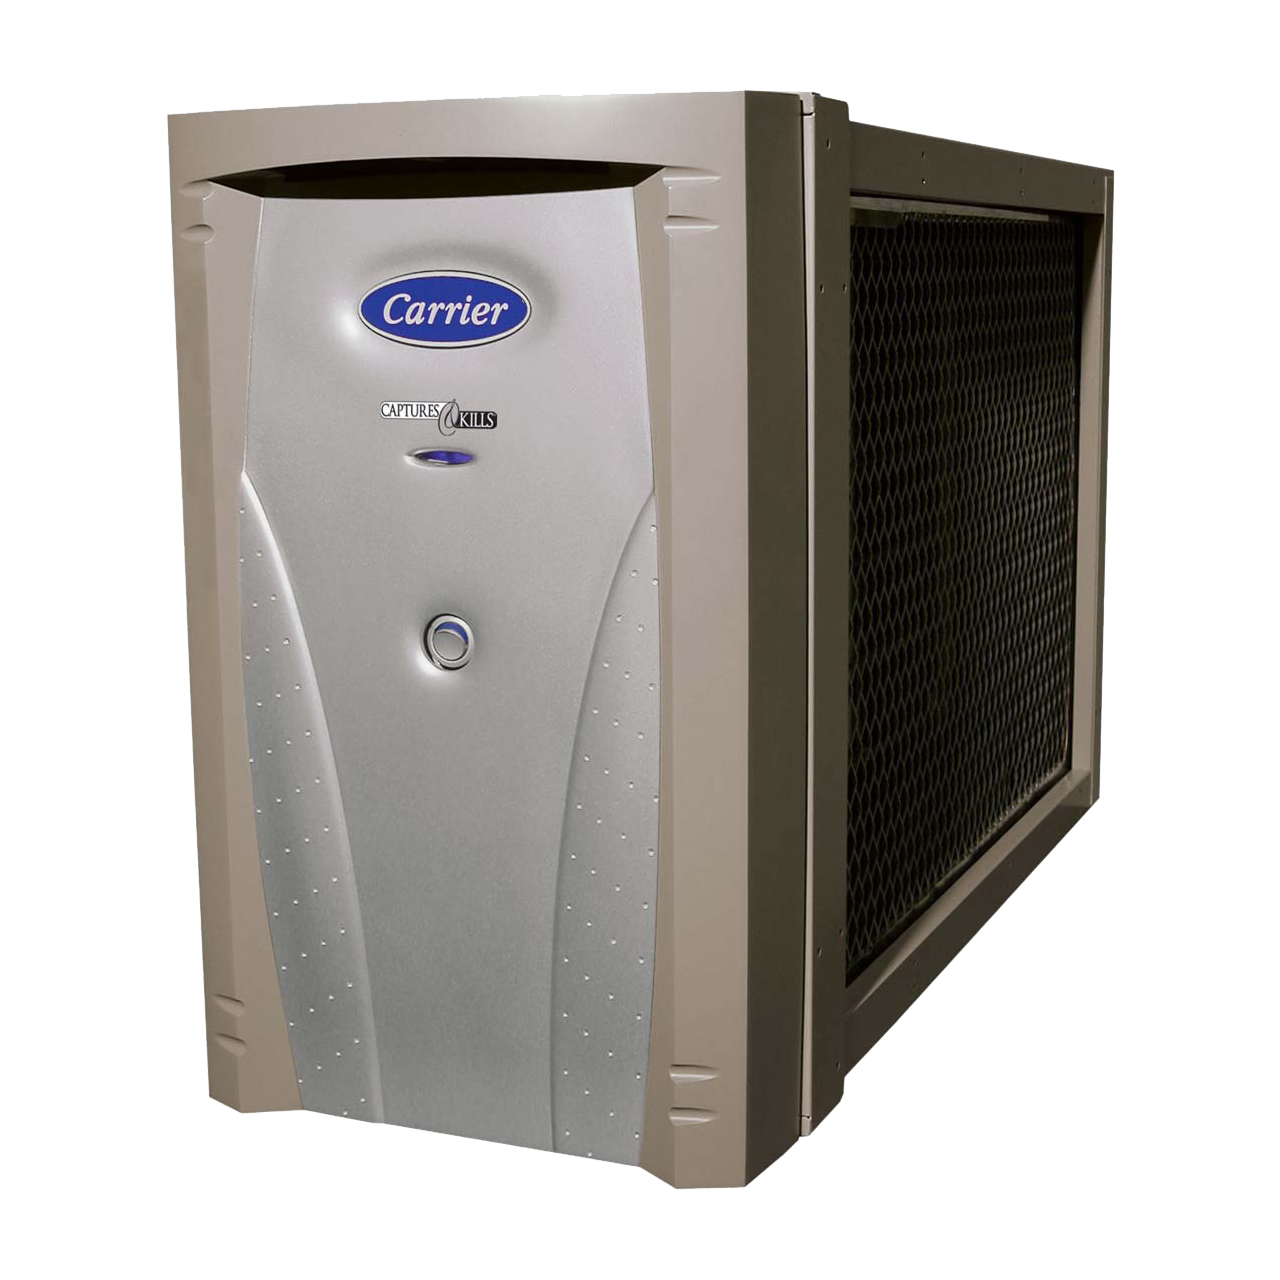 Infinity Air Purifier Gapaa Carrier Home Comfort